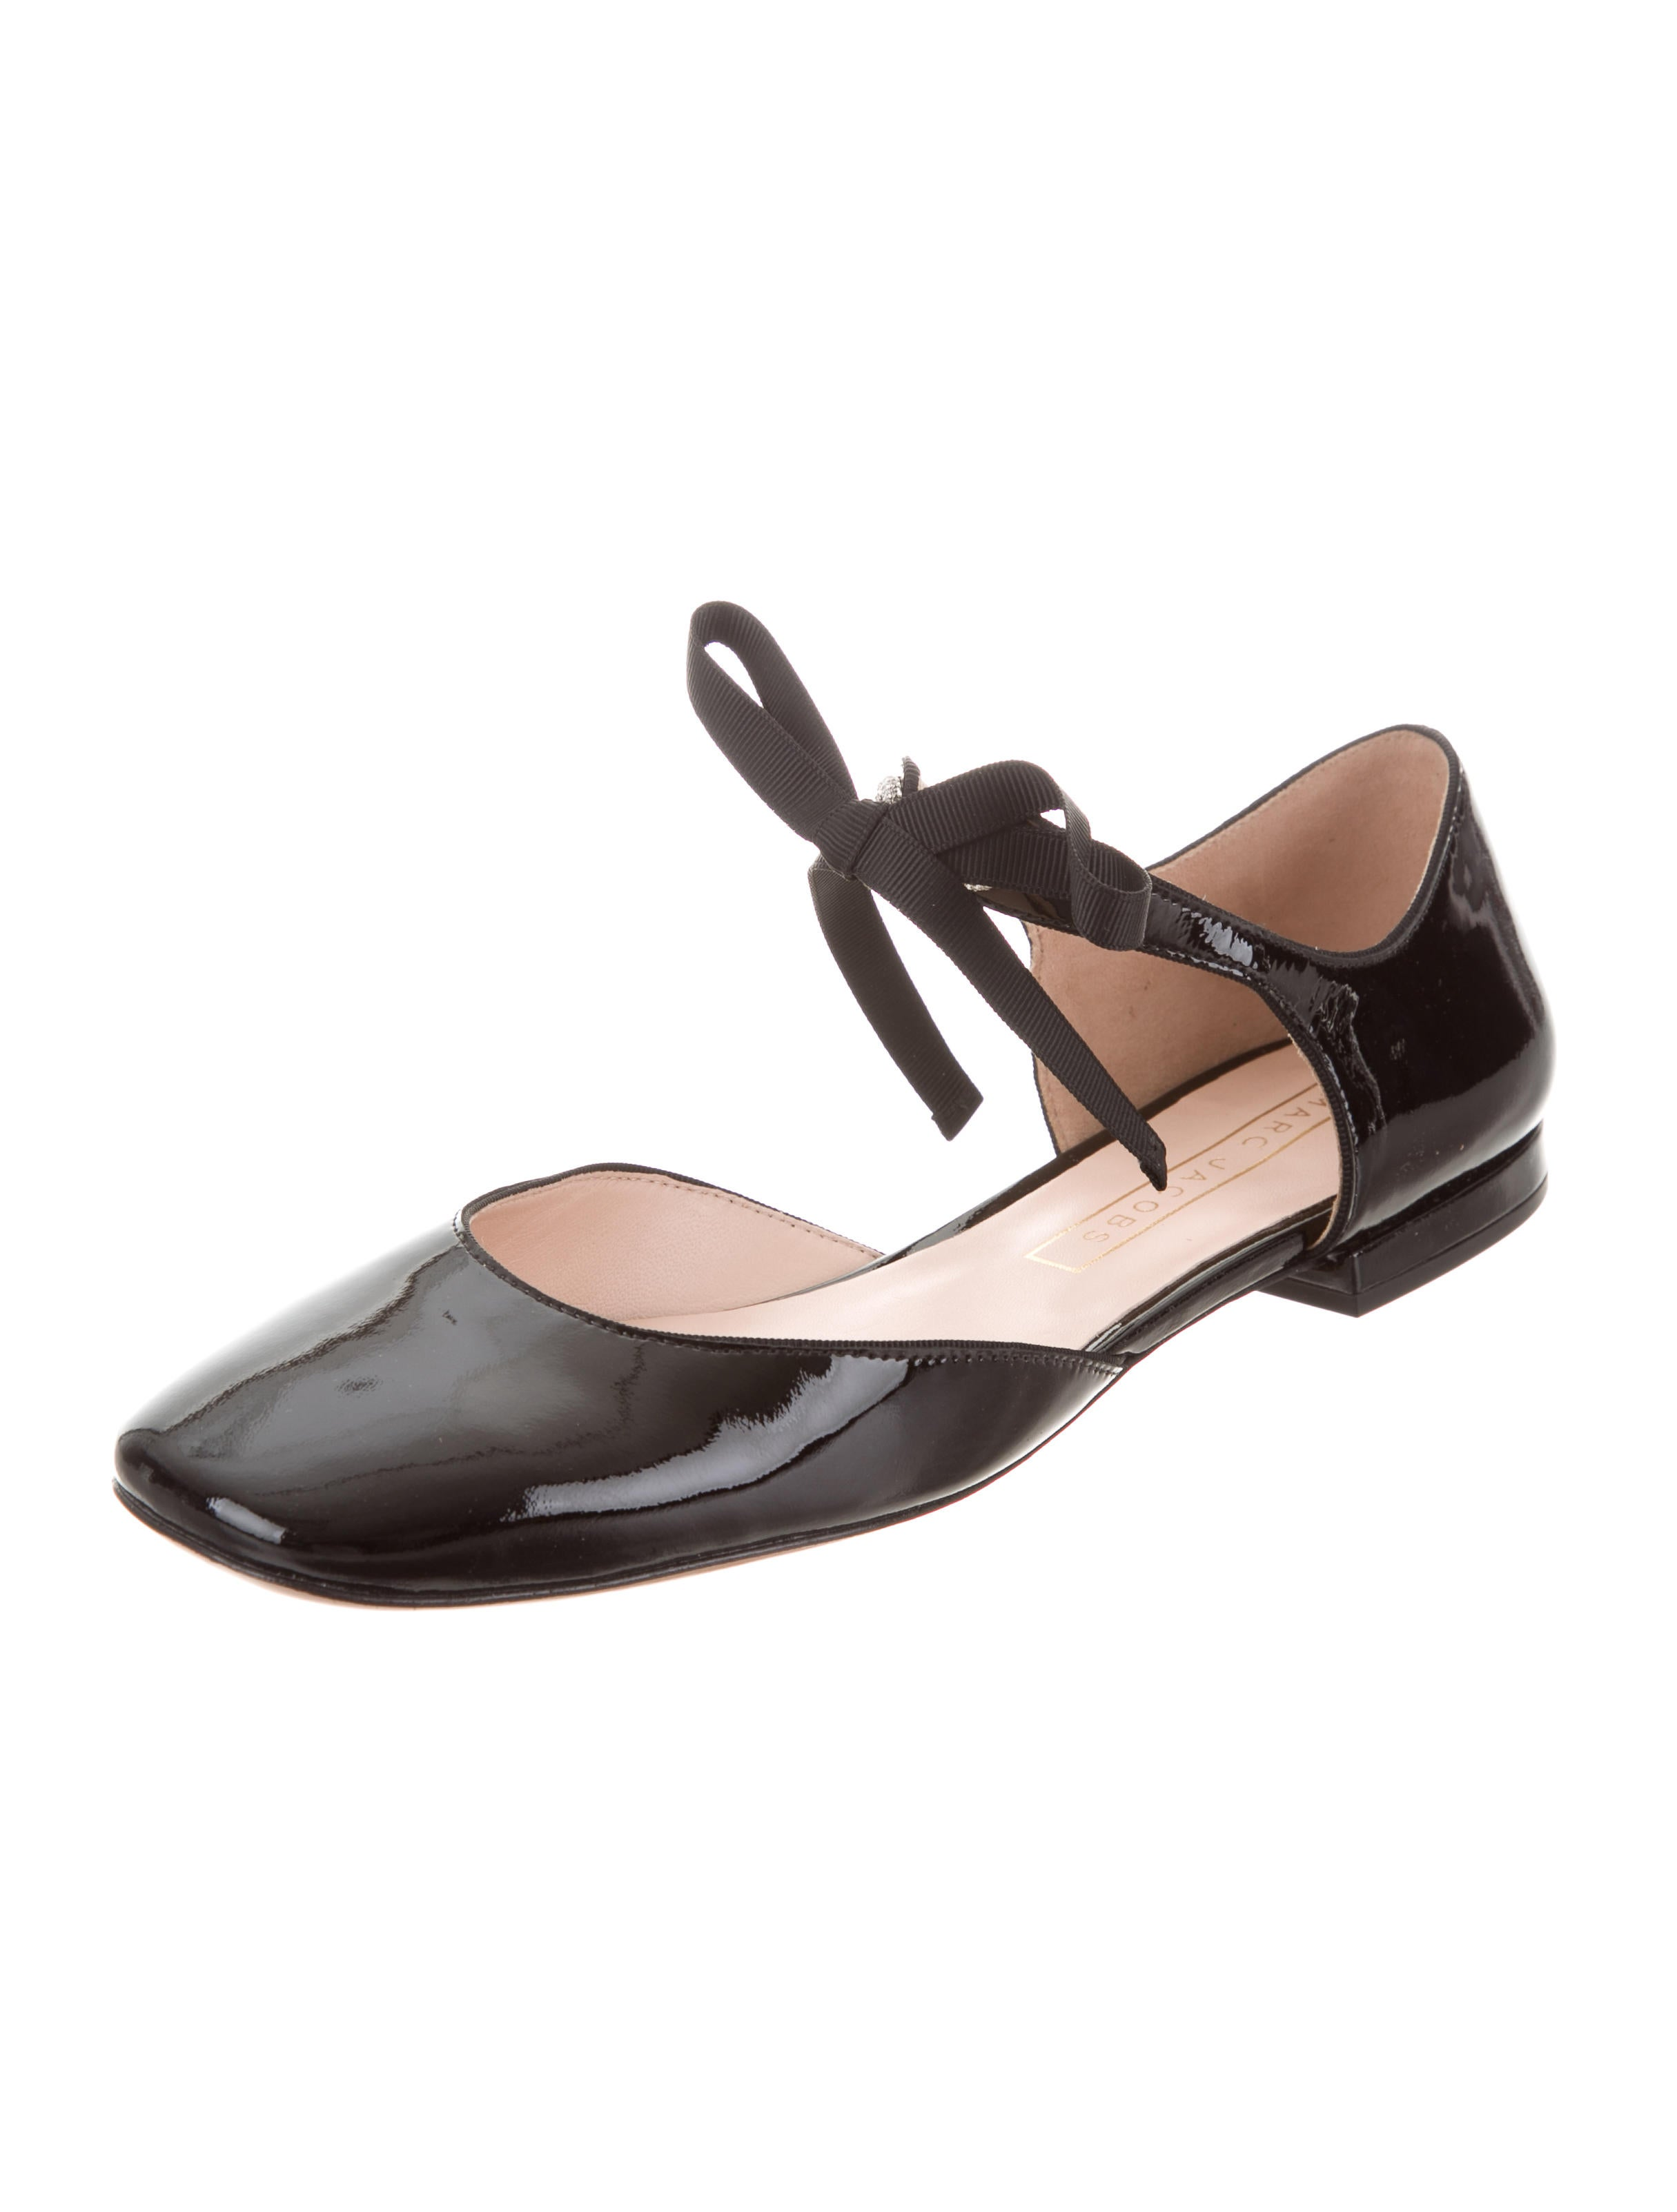 free shipping popular Marc Jacobs Patent Leather Square-Toe Flats cheap price original low shipping sale online 5vs4VM